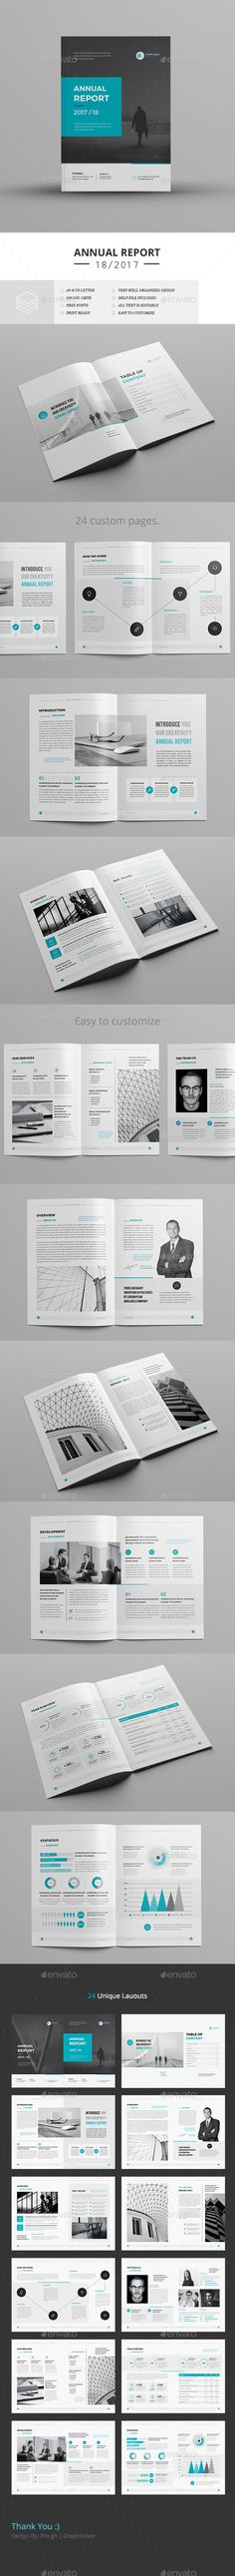 Corporate Annual Report Template - #Corporate #Annual #Report #Template #Brochure #Design. Download here: https://graphicriver.net/item/annual-report/19523781?ref=yinkira